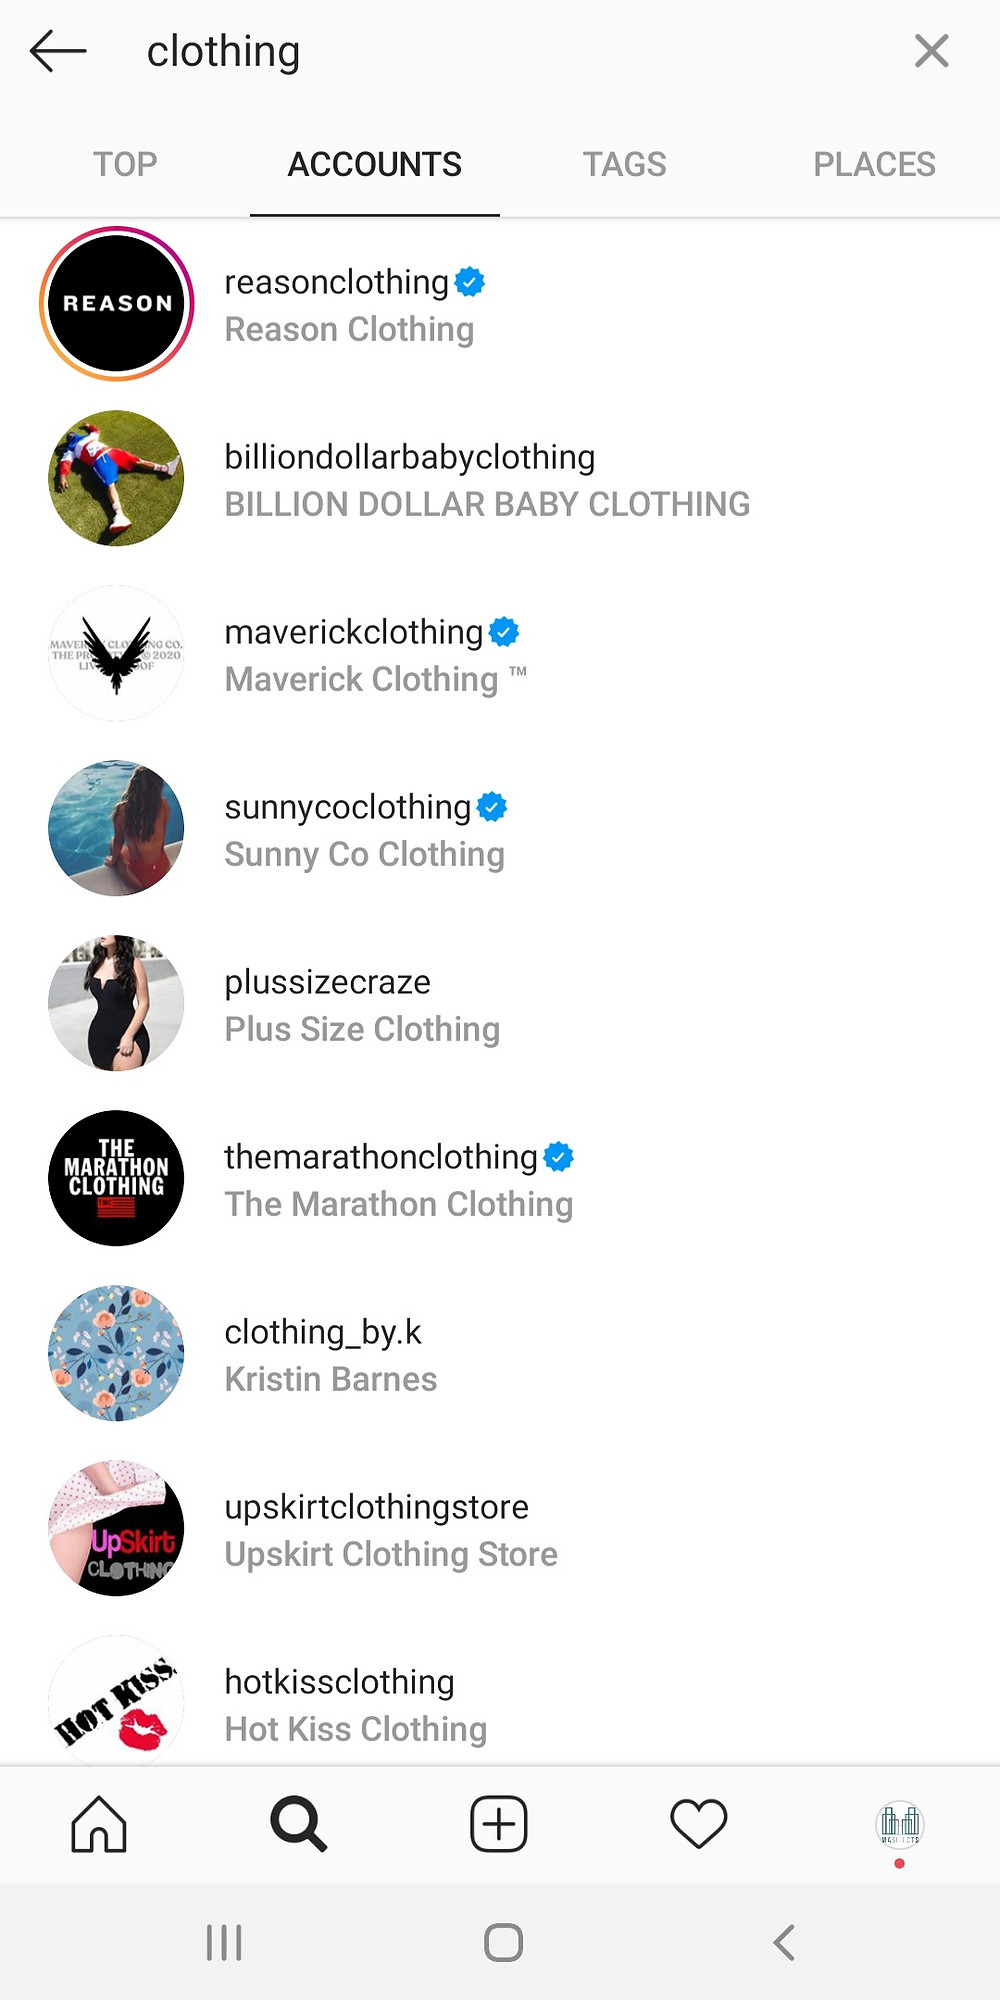 Instagram Search and Explore account searching